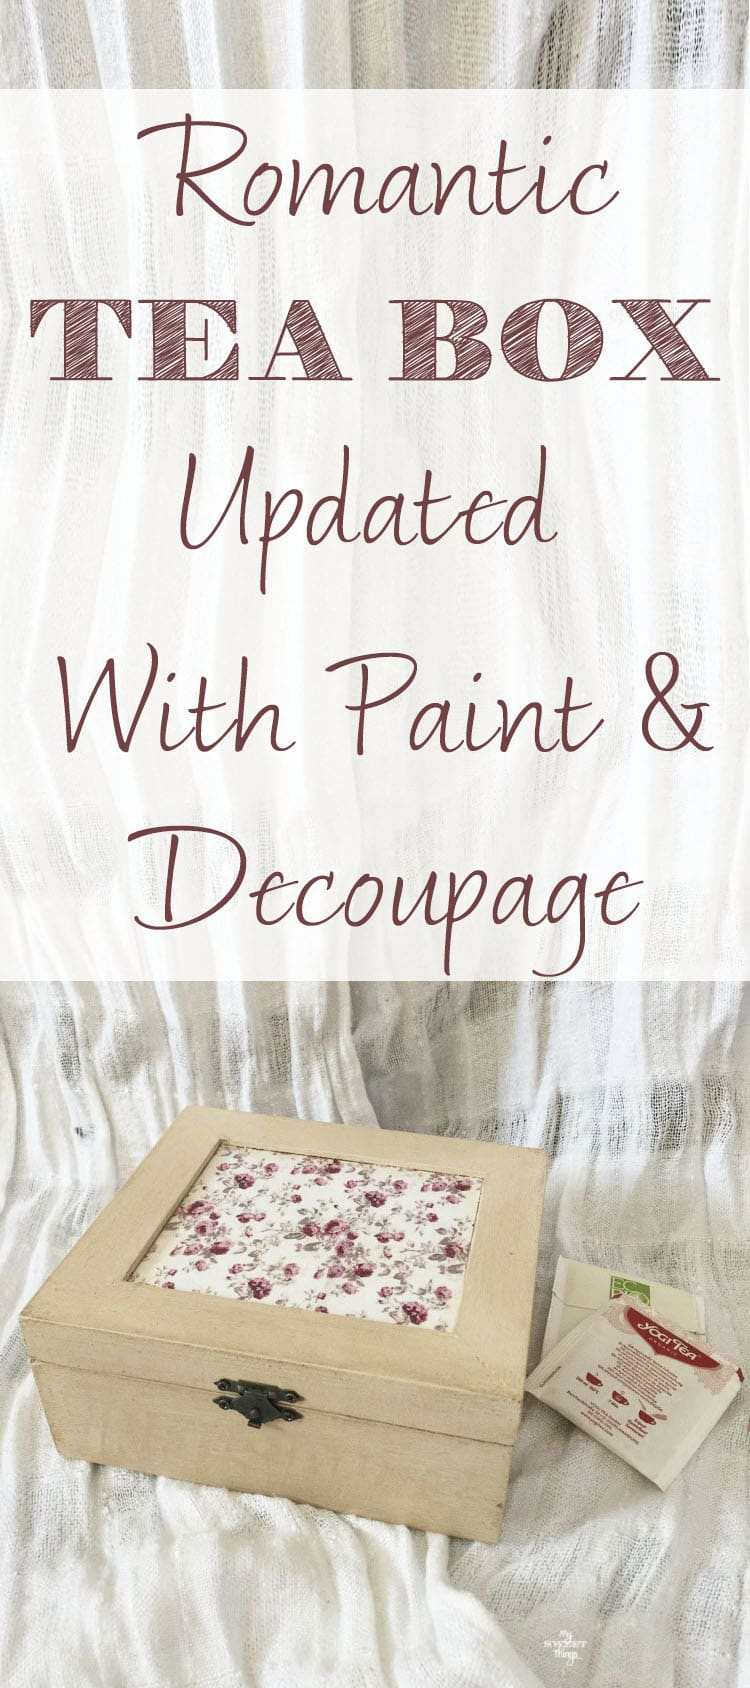 Romantic tea box updated with paint and decoupage · Via www.sweethings.net